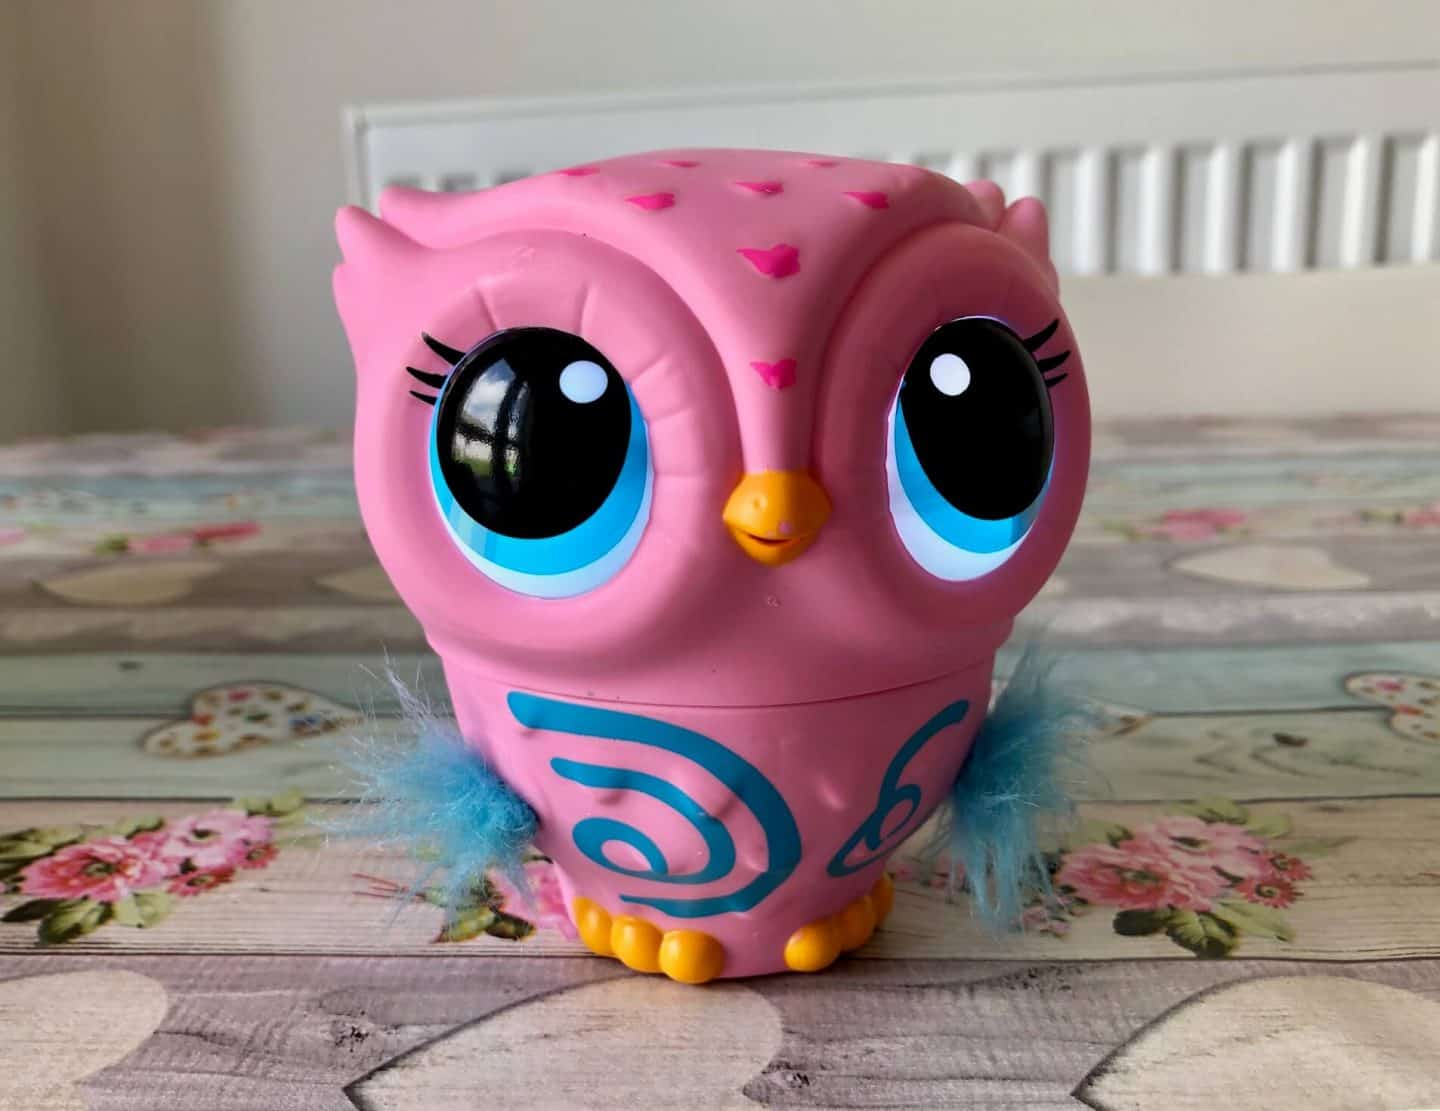 Owleez Interactive Toy Owl: Teach Me To Fly - Review